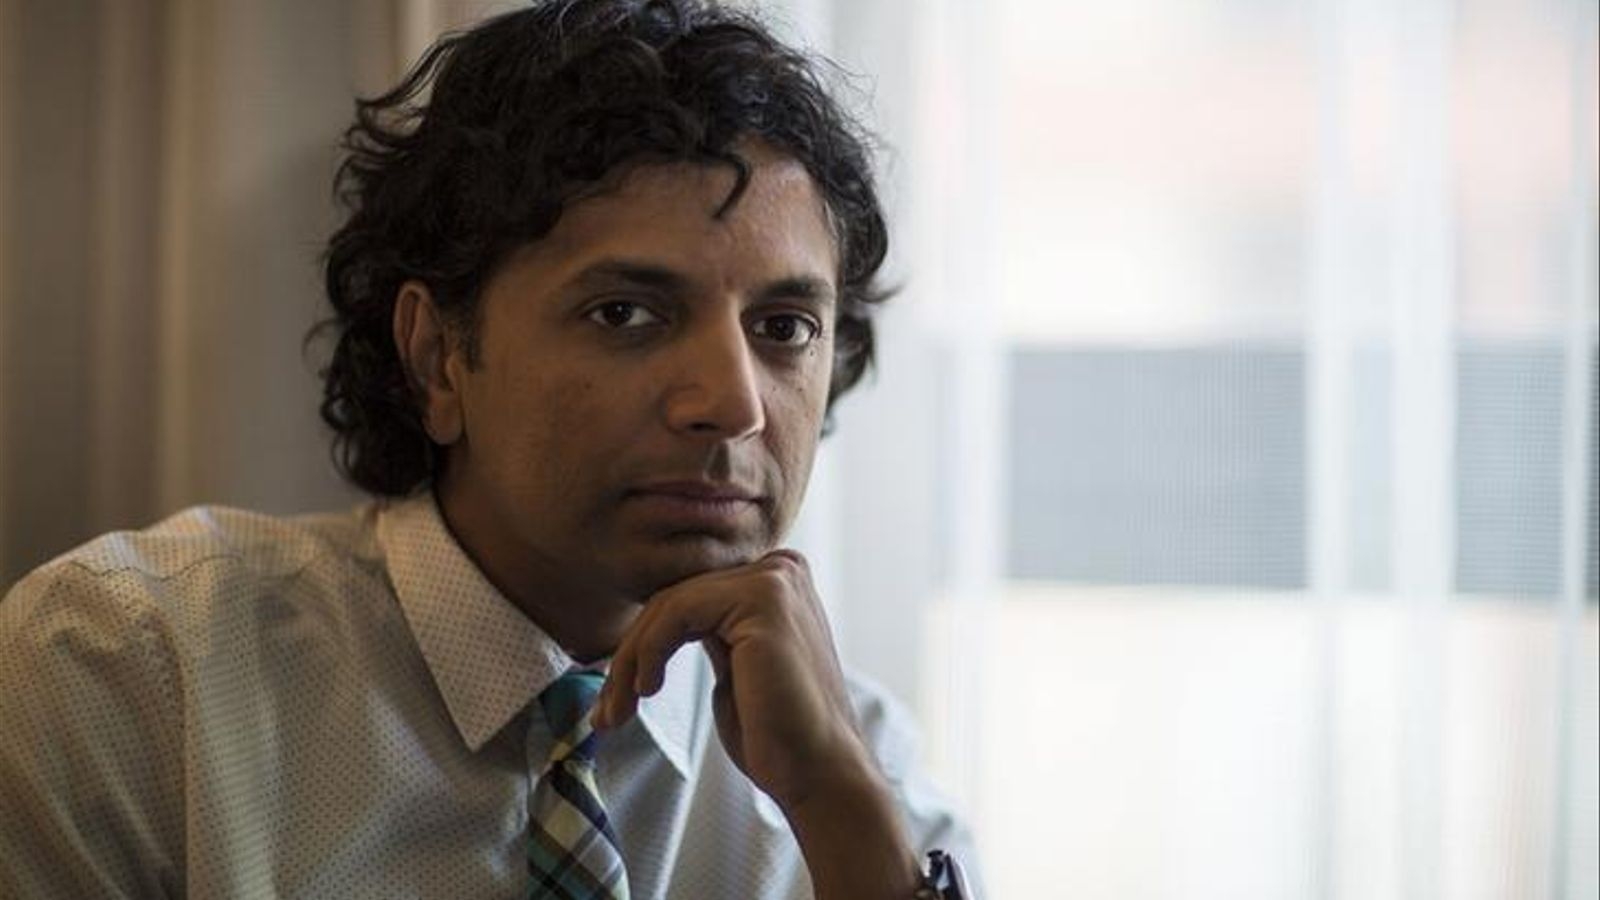 El director M. Night Shyamalan